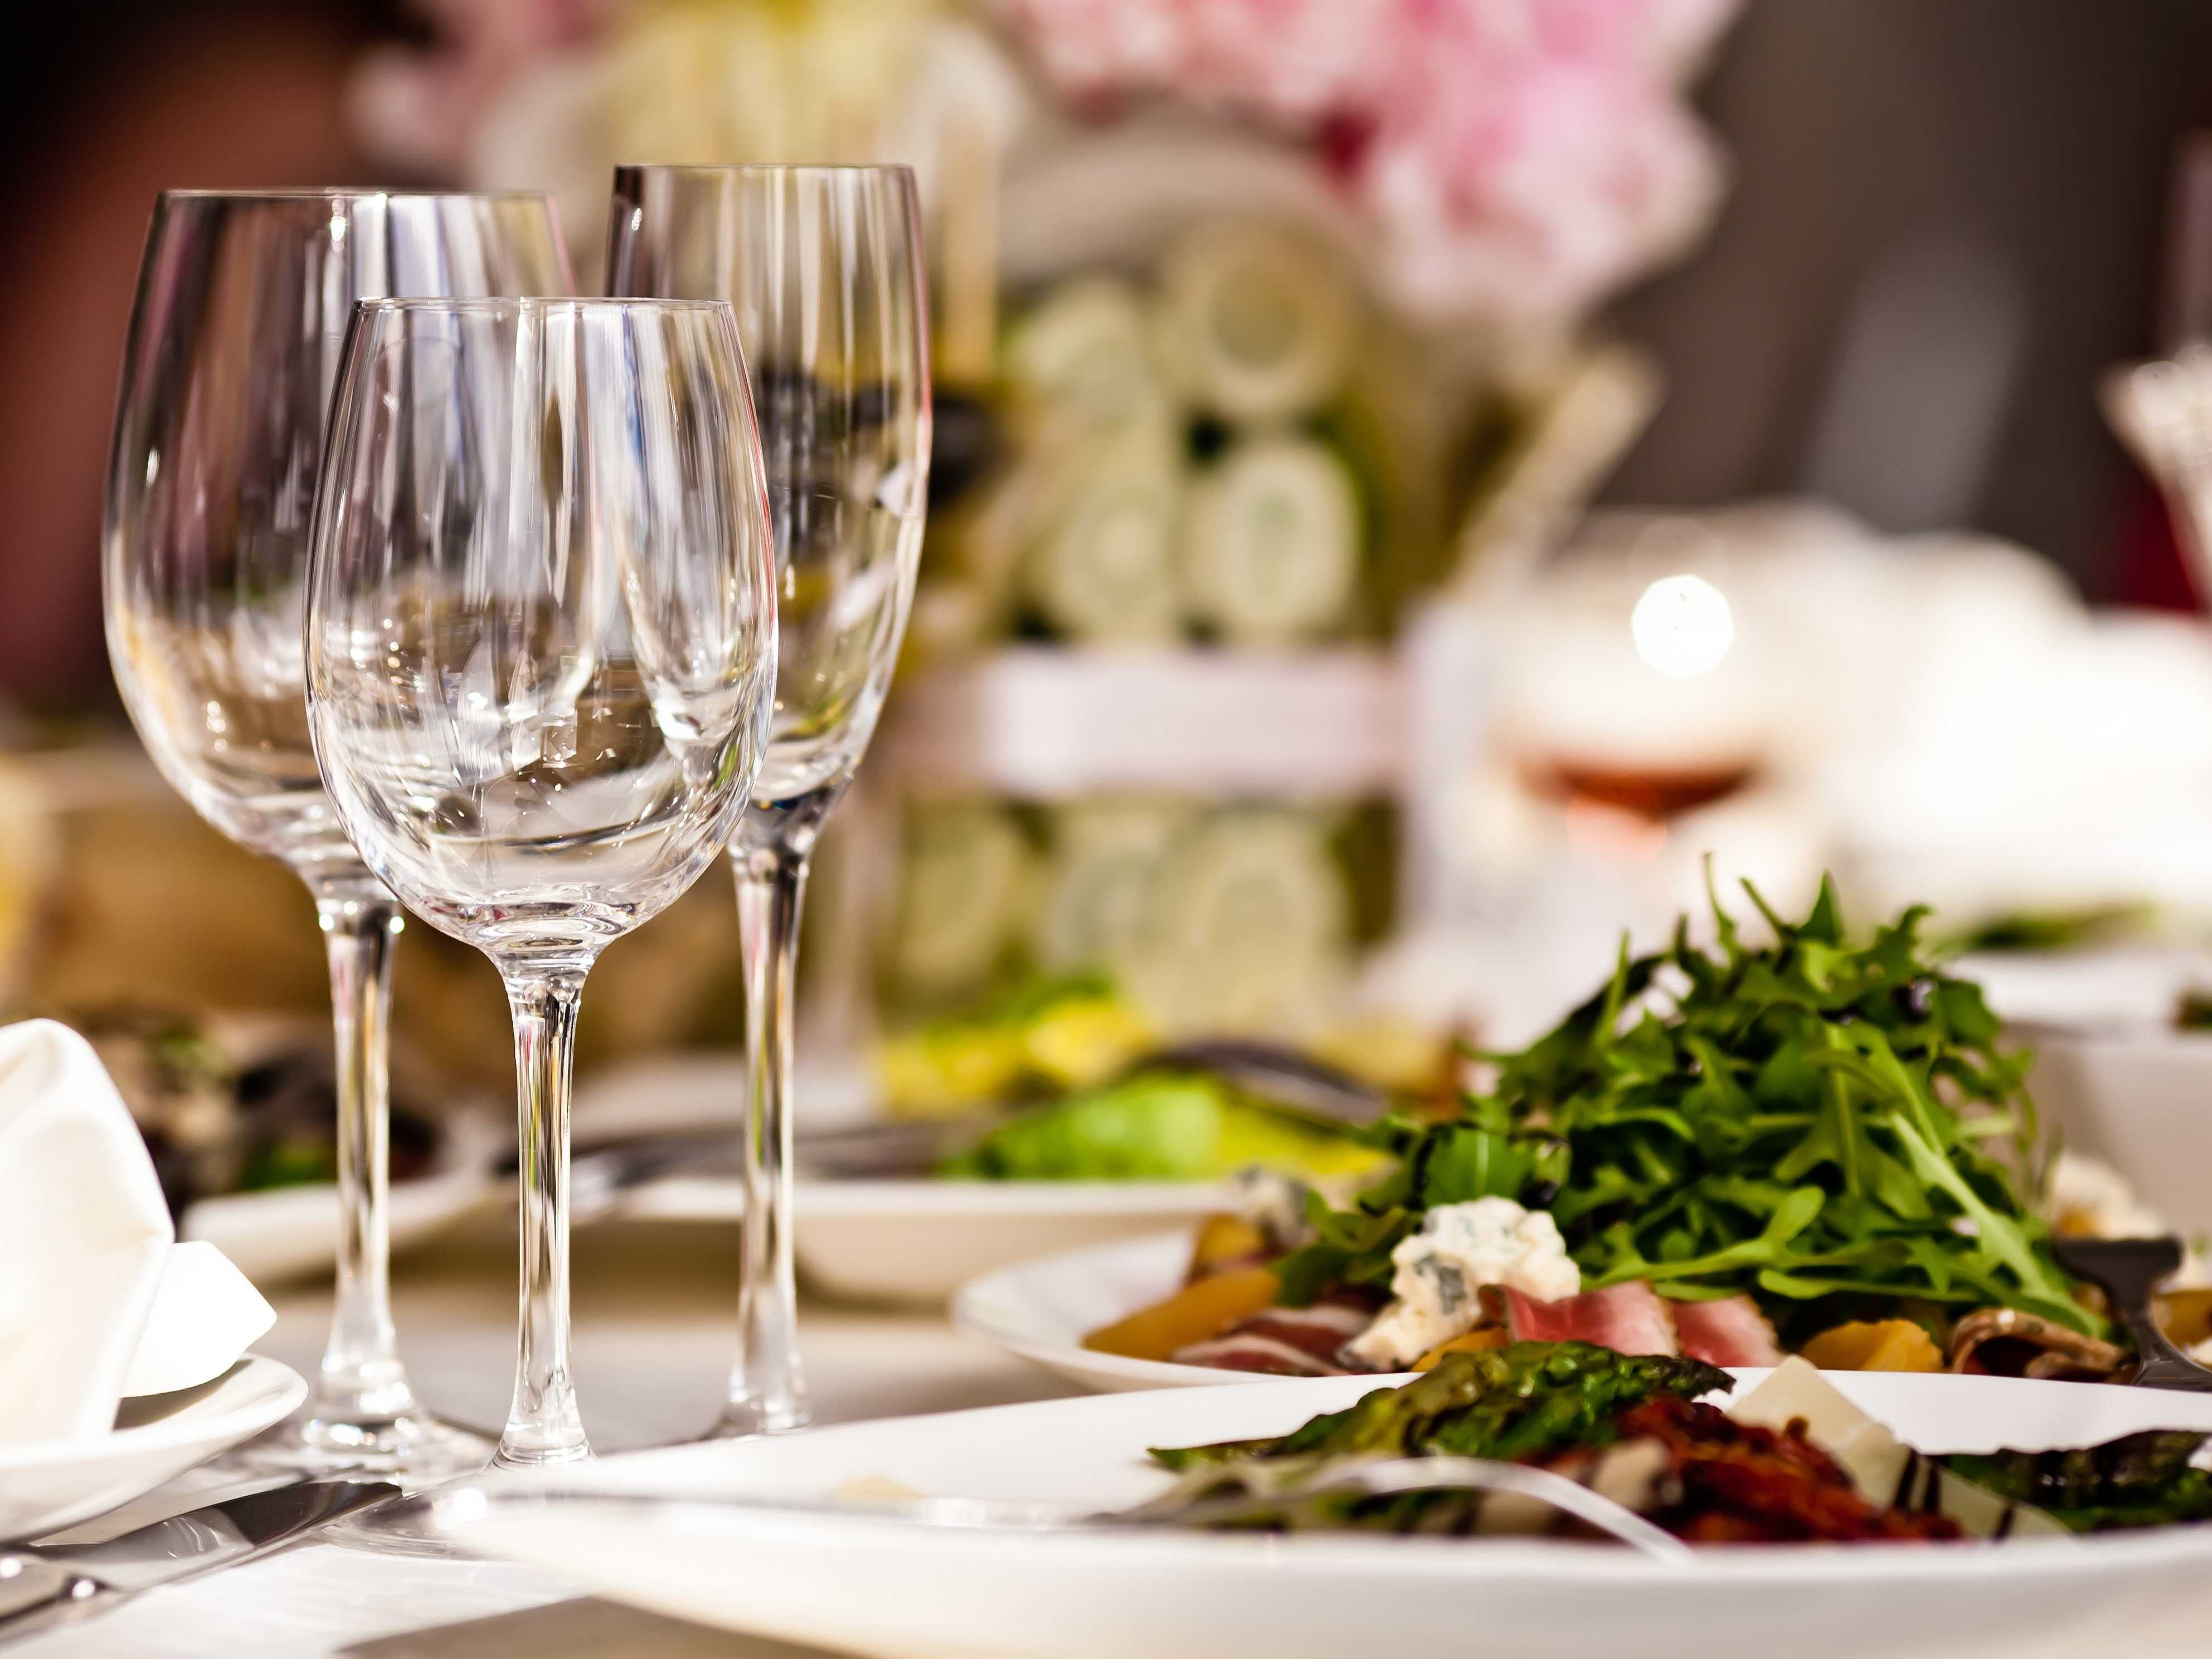 15 Etiquette Rules For Dining At Fancy